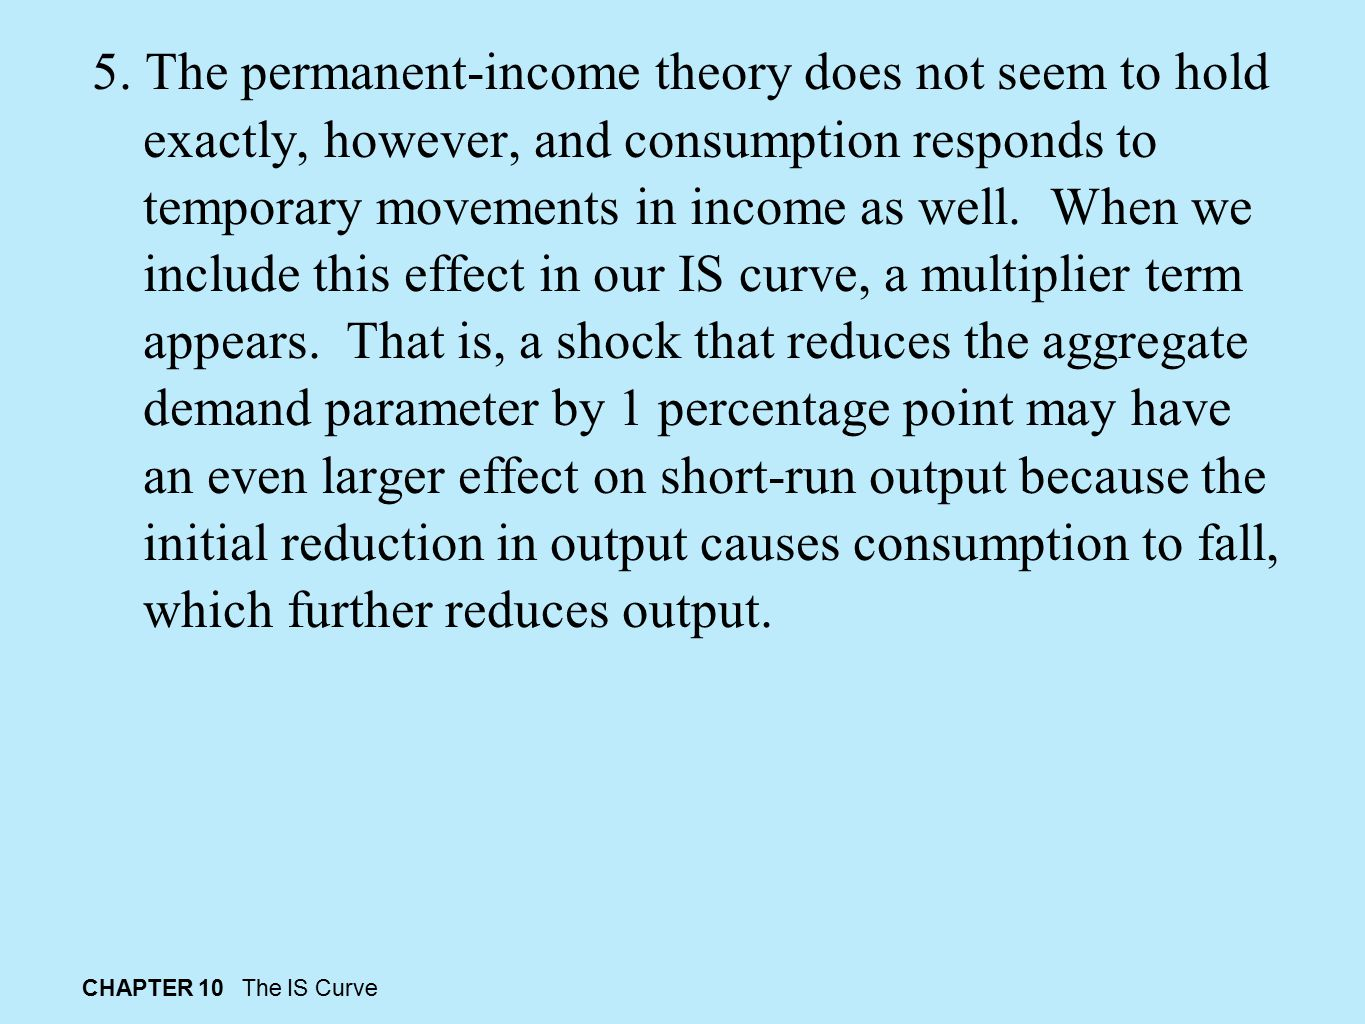 CHAPTER 10 The IS Curve 5. The permanent-income theory does not seem to hold exactly, however, and consumption responds to temporary movements in inco